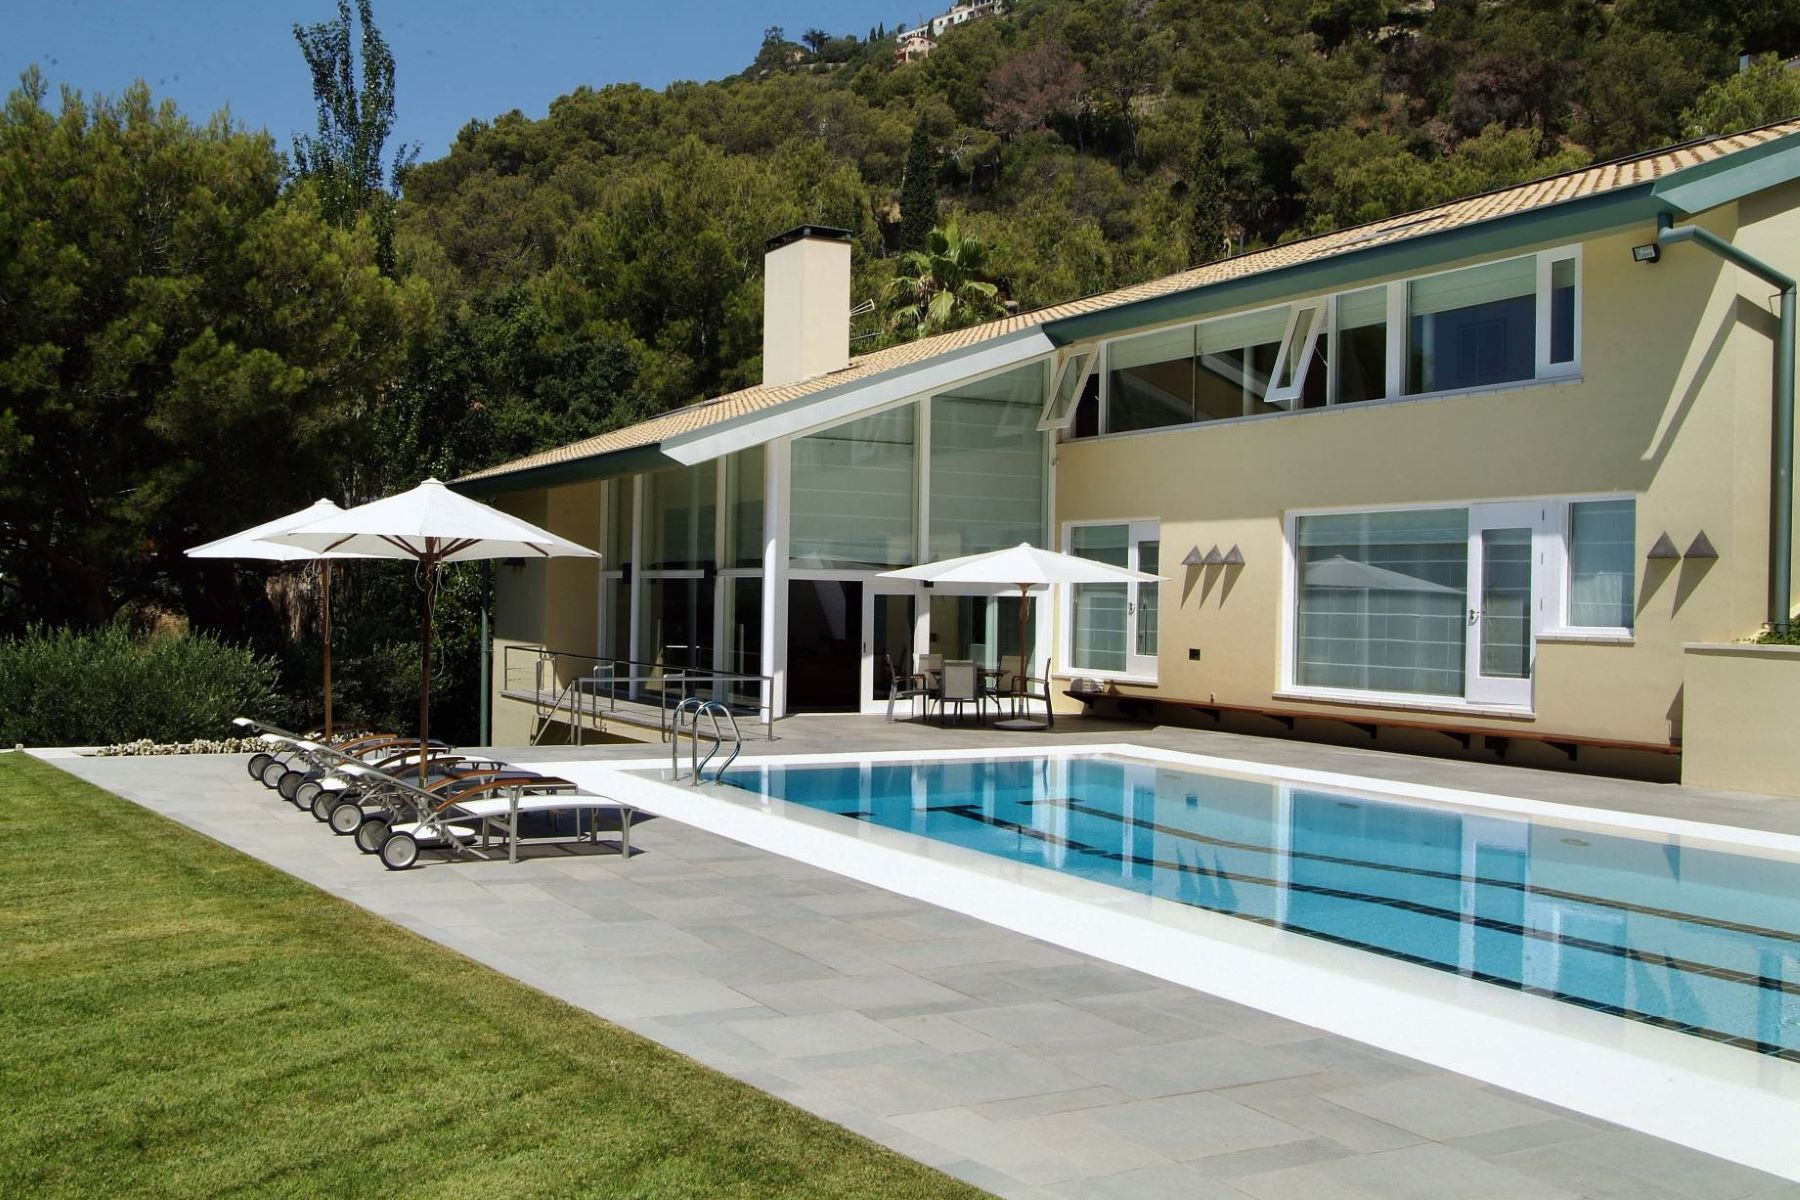 Single Family Home for Sale at Spectacular detached villa unique in its style in Begur Begur, Costa Brava, 17255 Spain